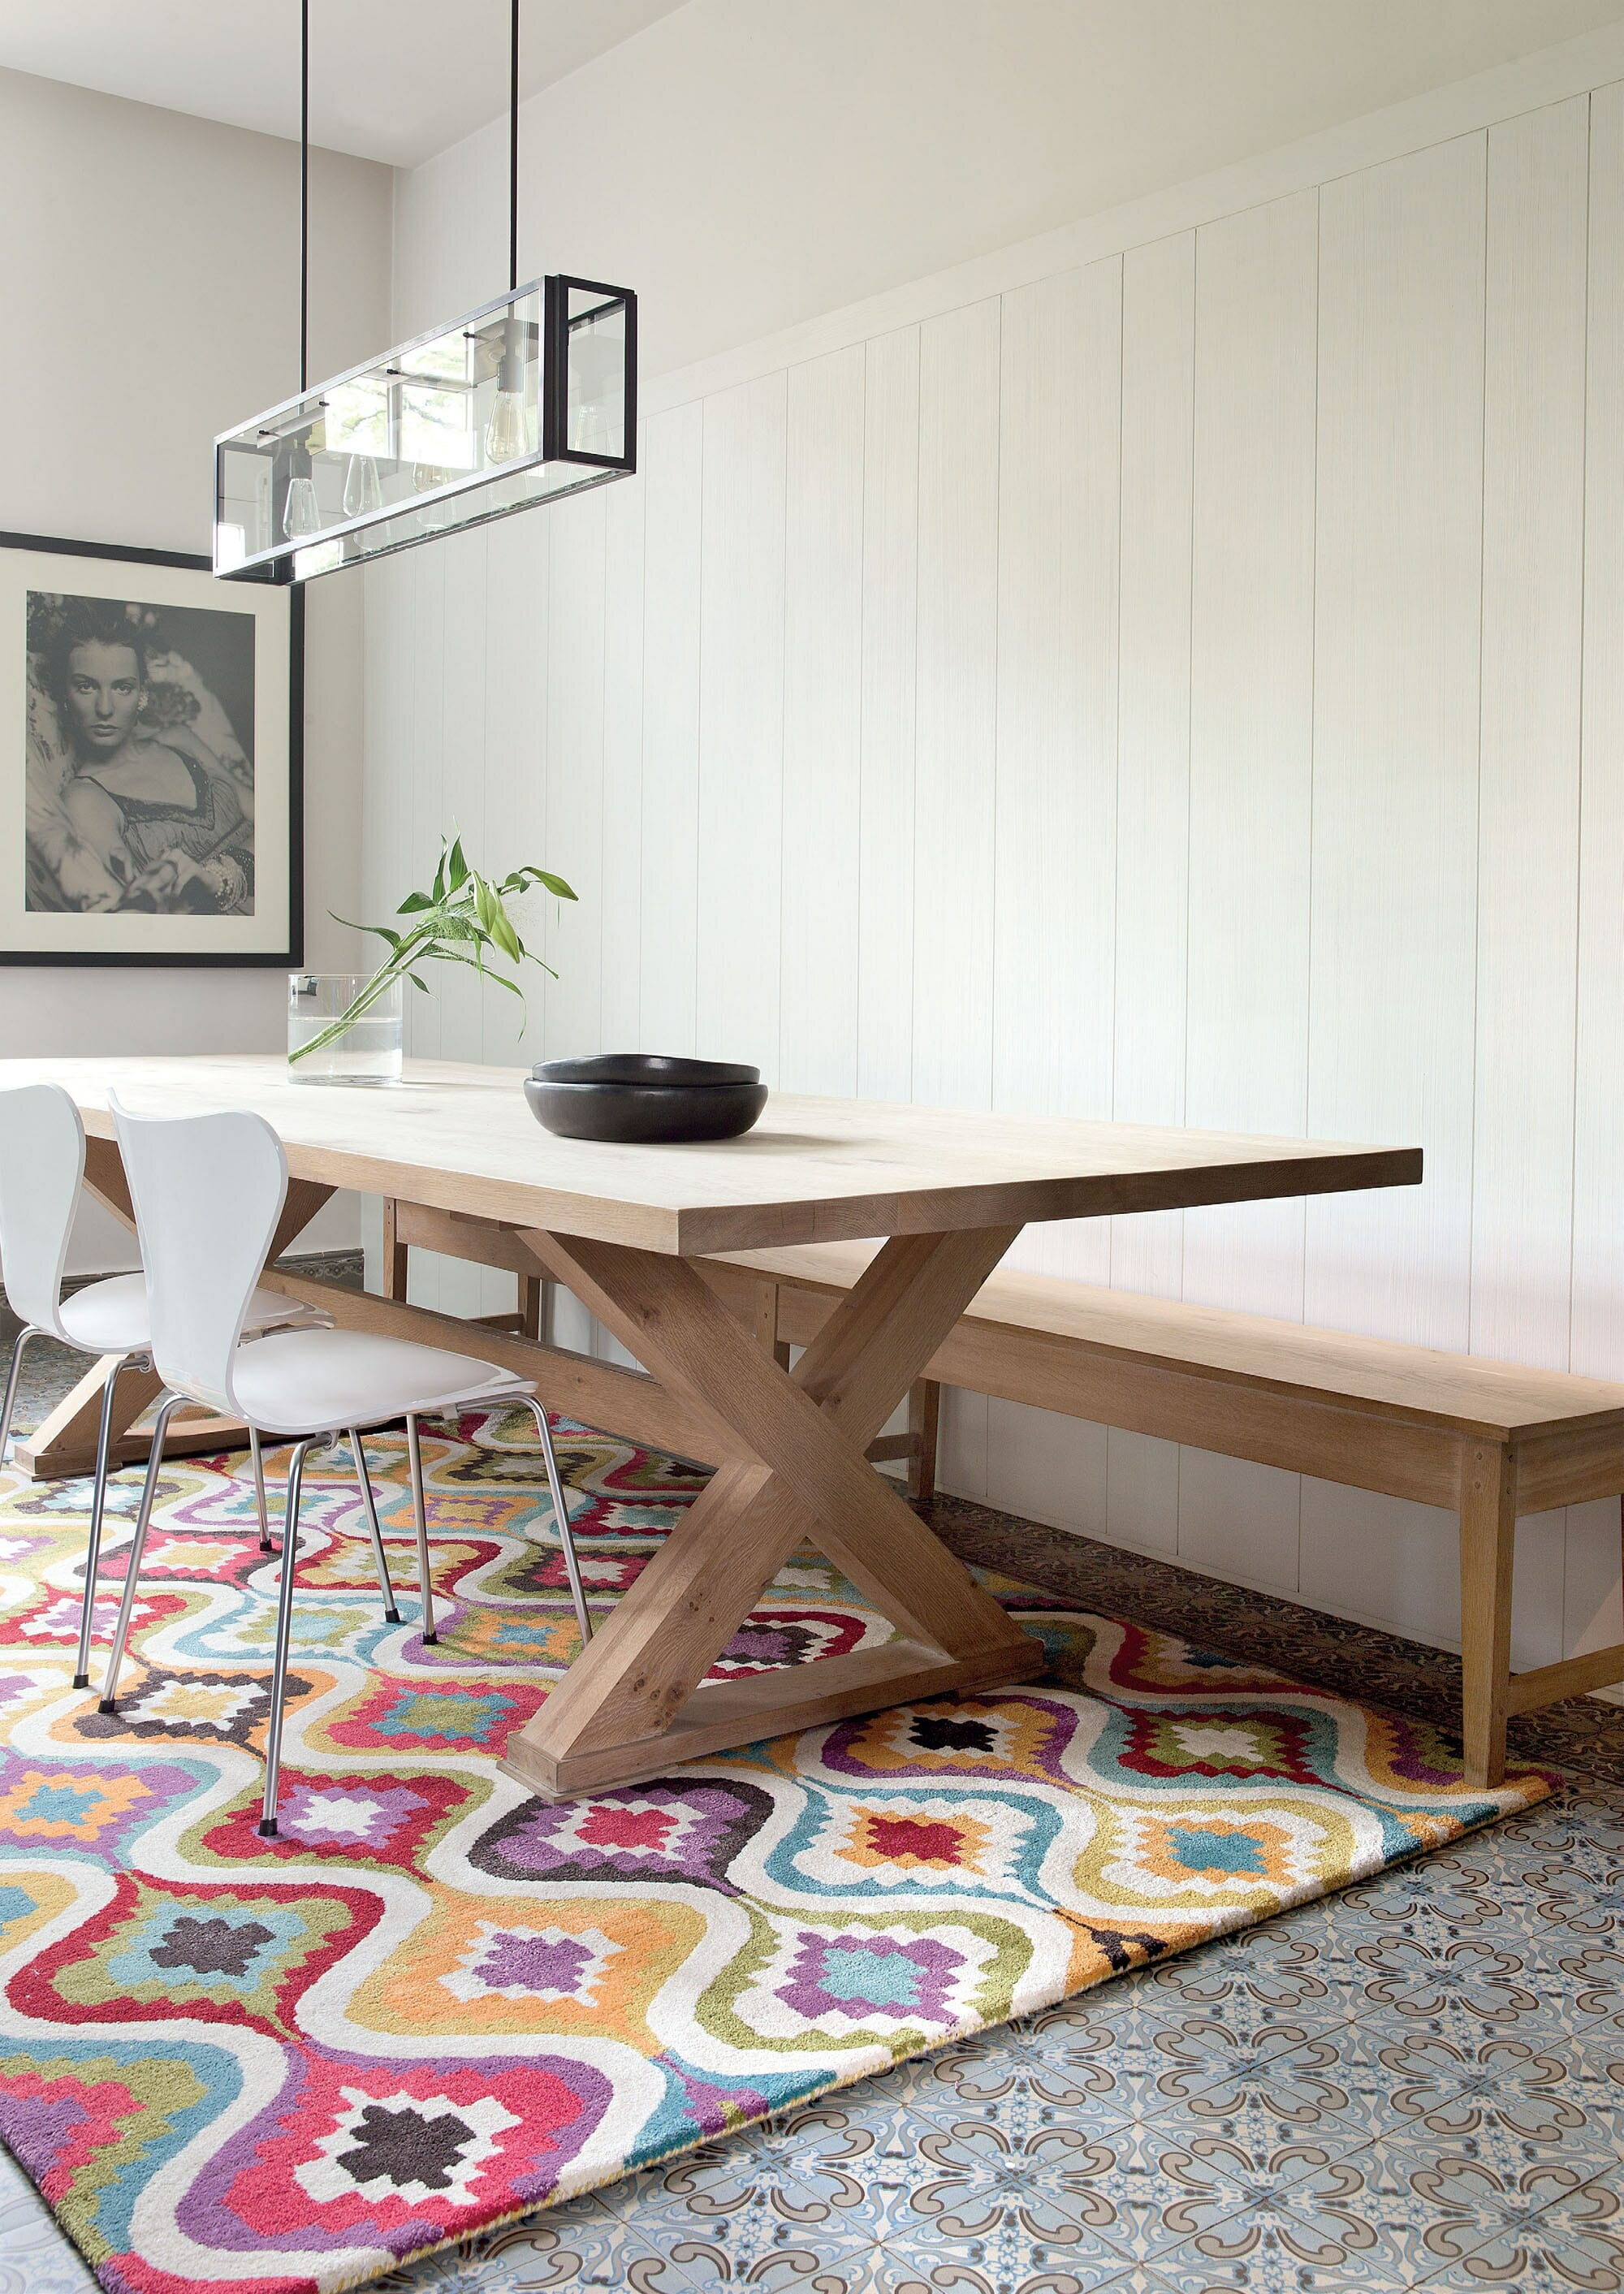 Mobilier neuf chaise table ameubleùment